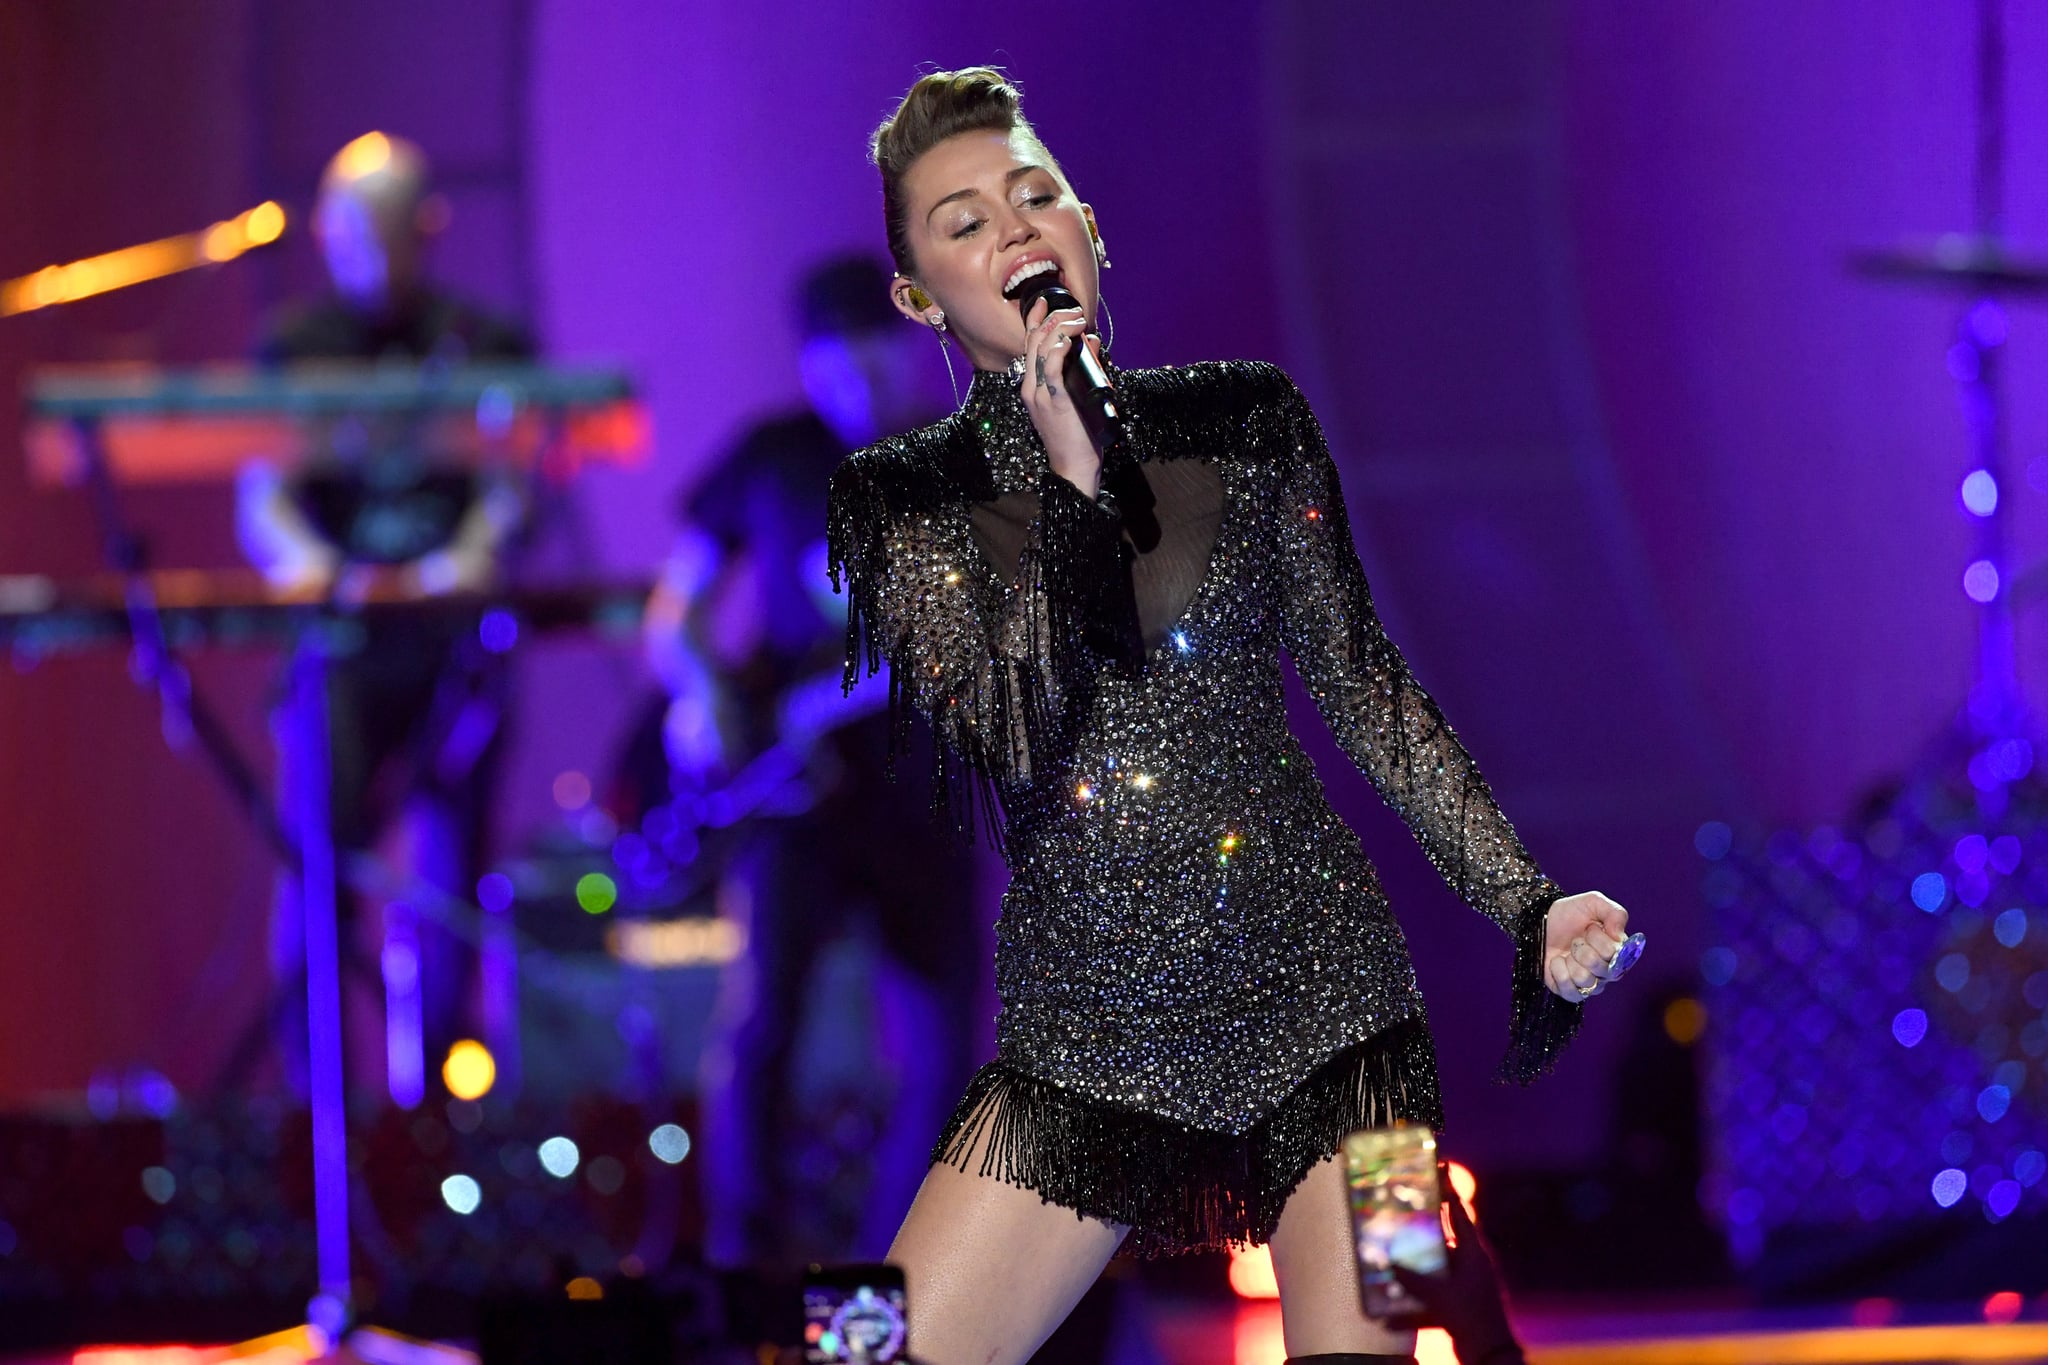 Miley Cyrus duets with dad at album launch